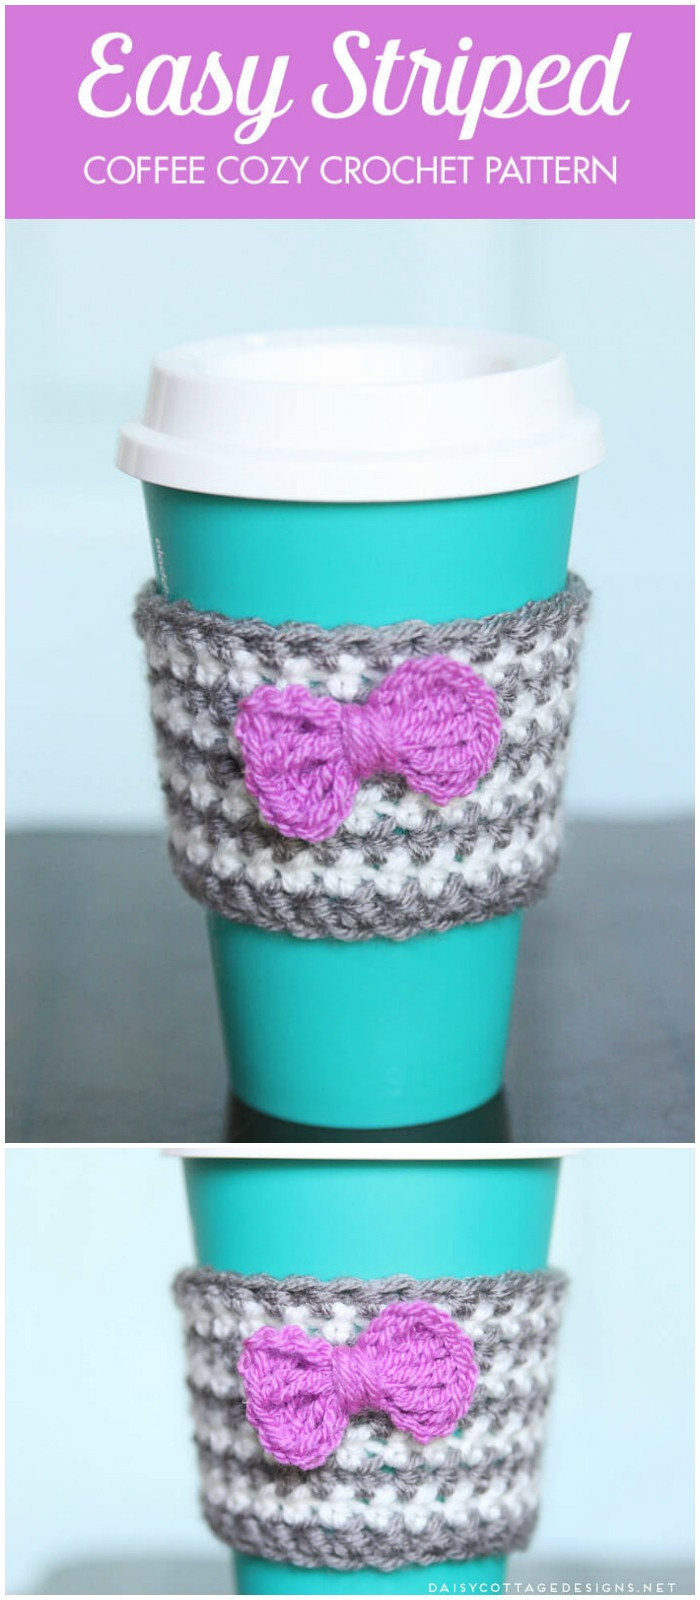 Crochet Coffee Cup Cozy Fresh 8 Crochet Cozy Patterns Free Crochet Patterns • Diy Home Of Crochet Coffee Cup Cozy Elegant Wooftastic Puppy Crochet Coffee Cozy